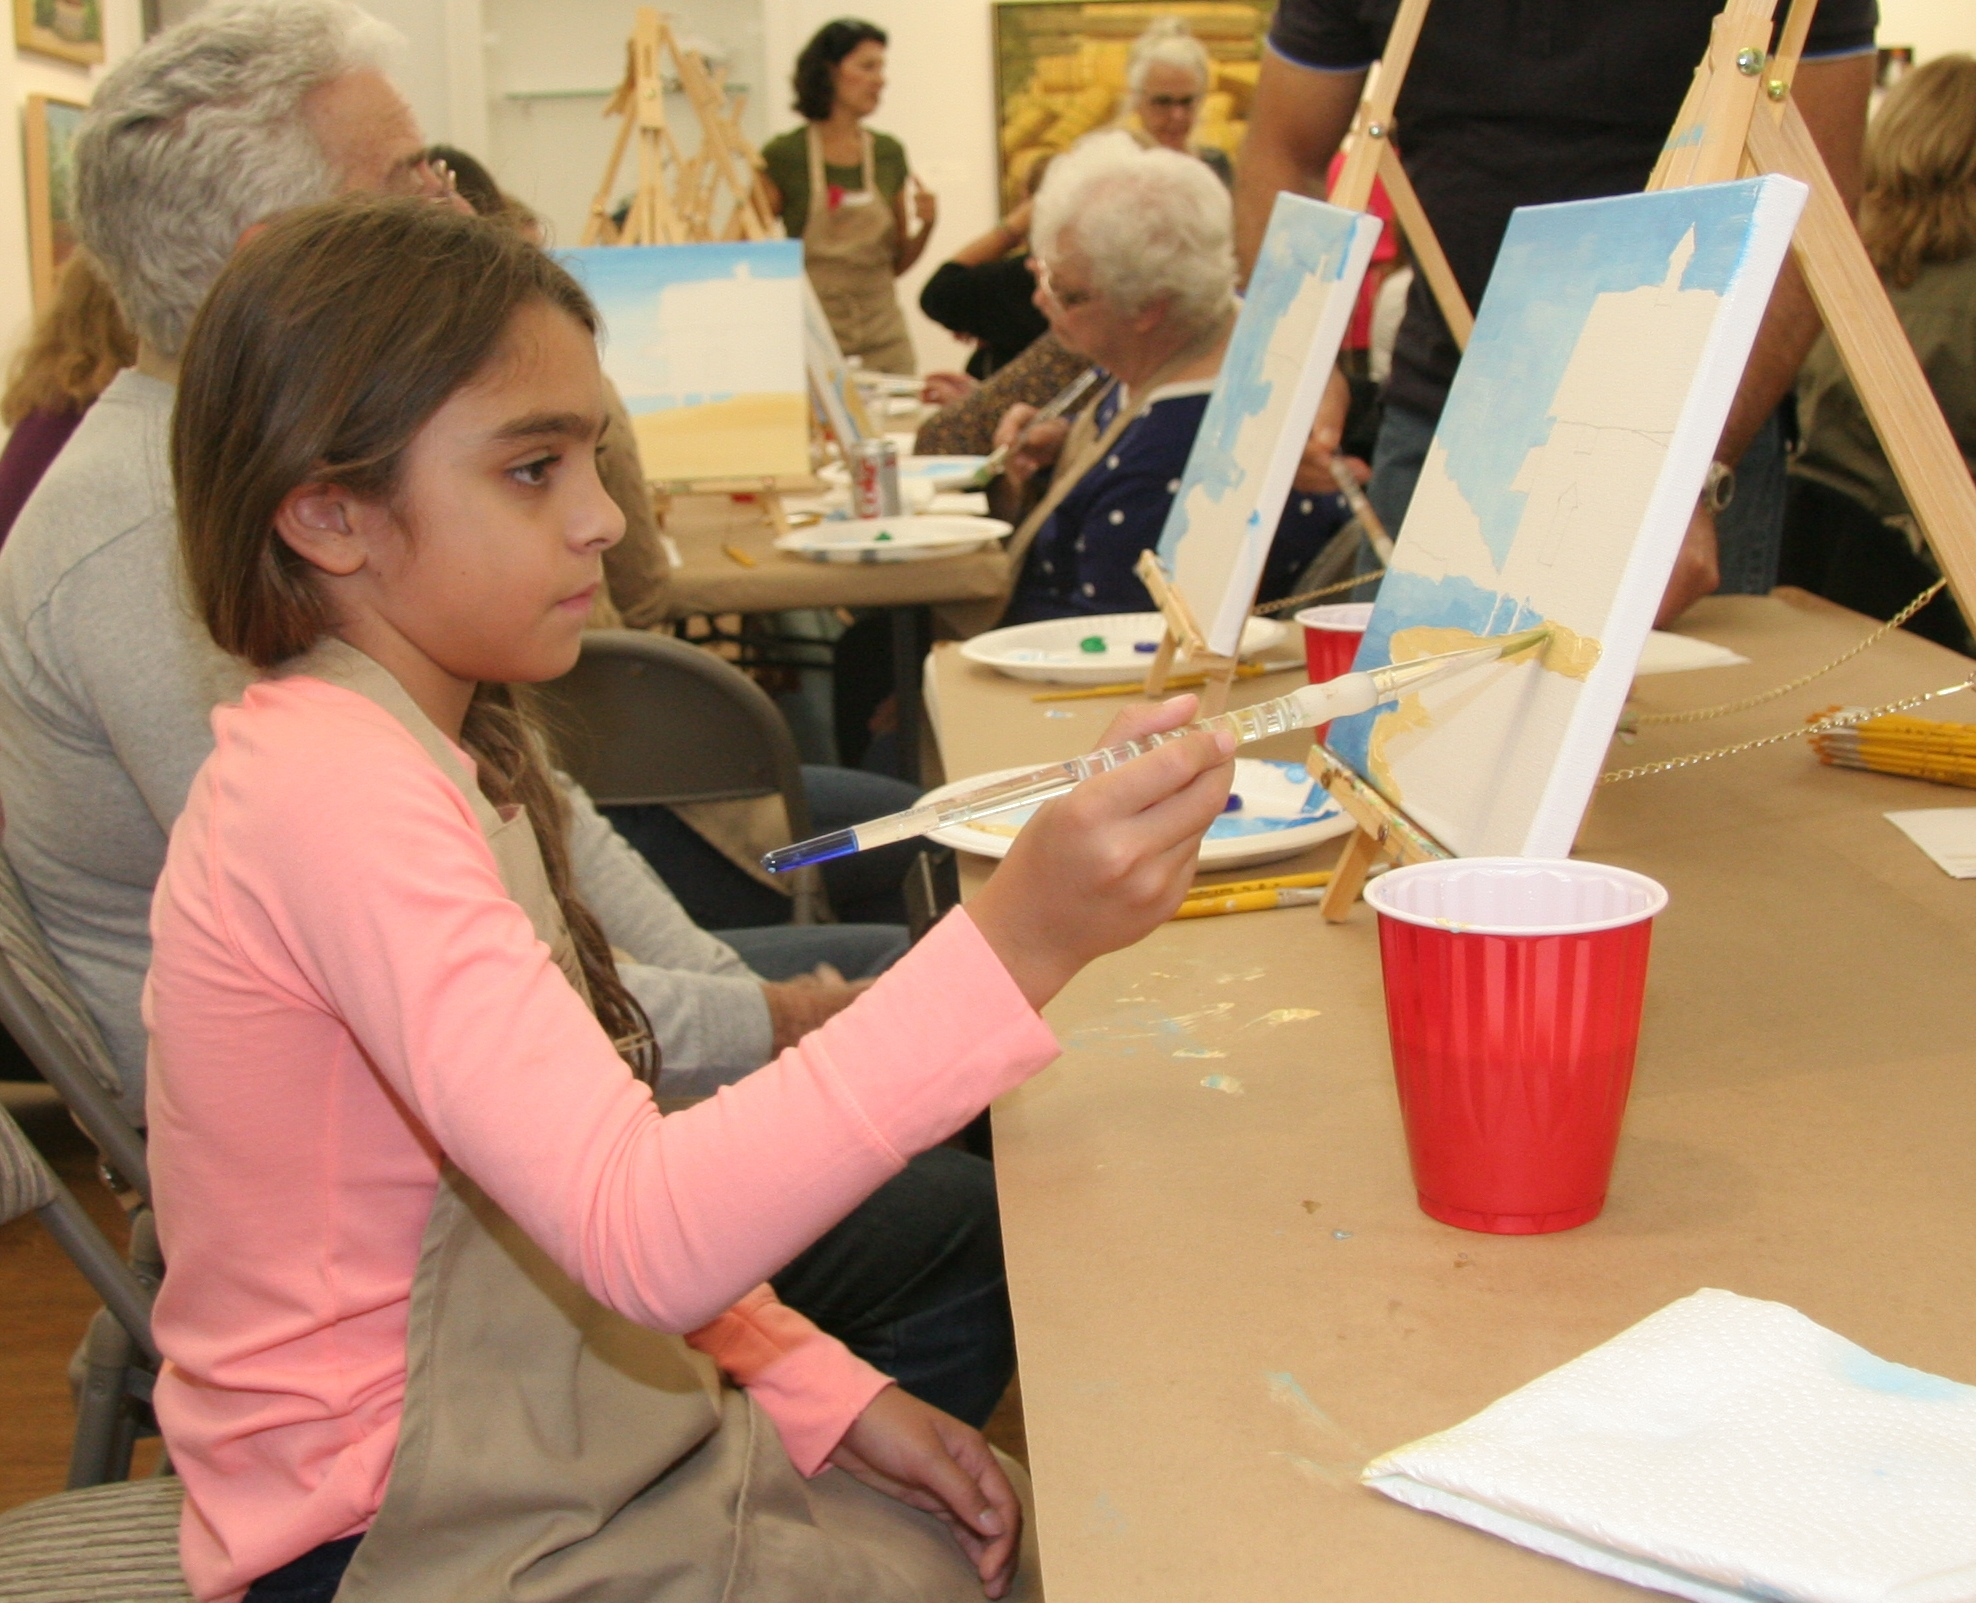 Painting Party 10-25 010a.jpg